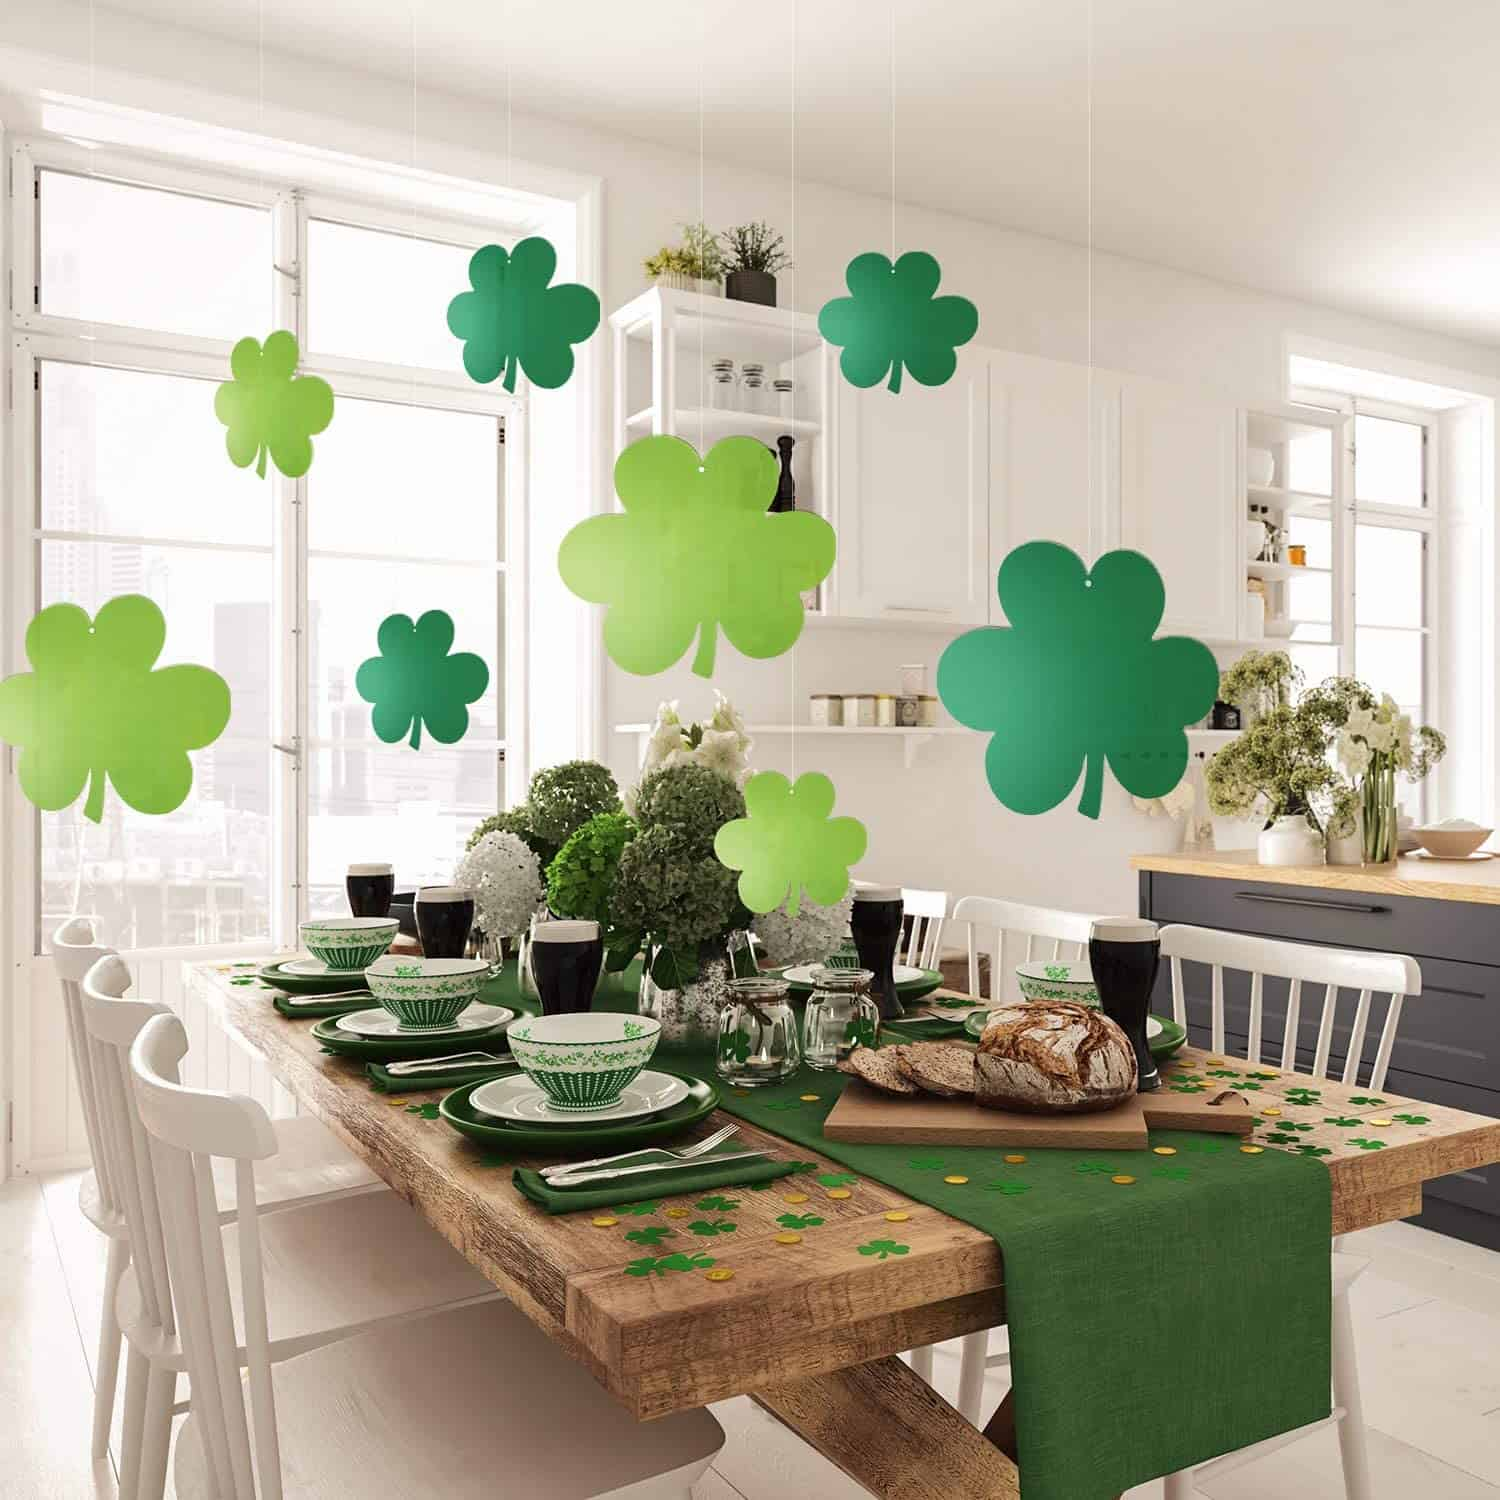 farmhouse dining table decorated for st. patrick's day